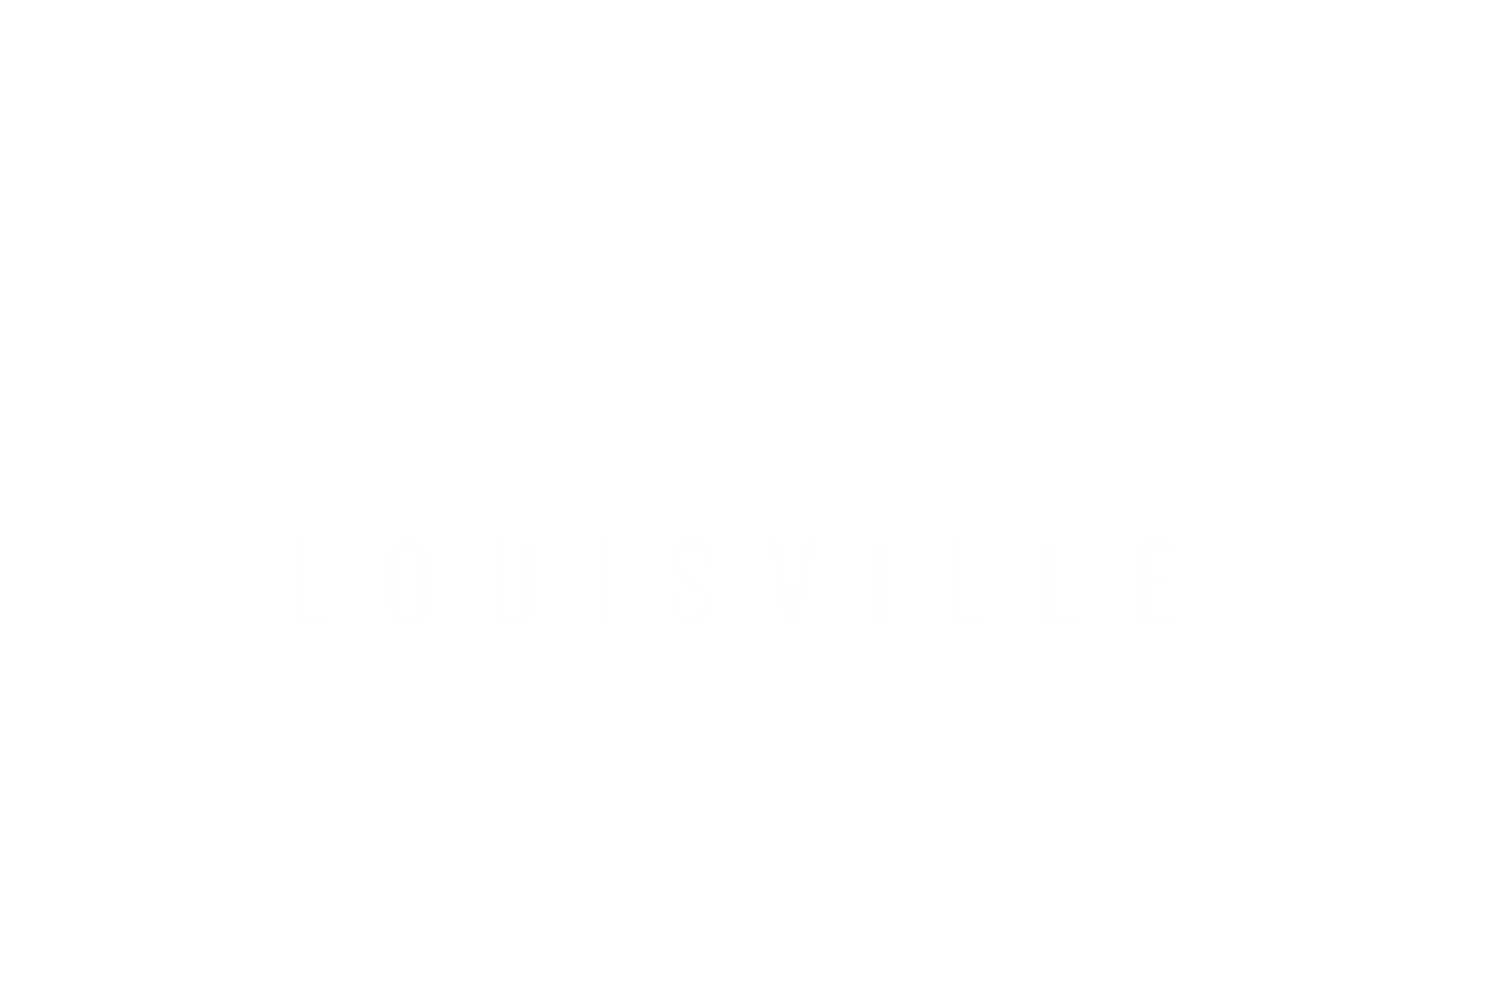 level up louisville